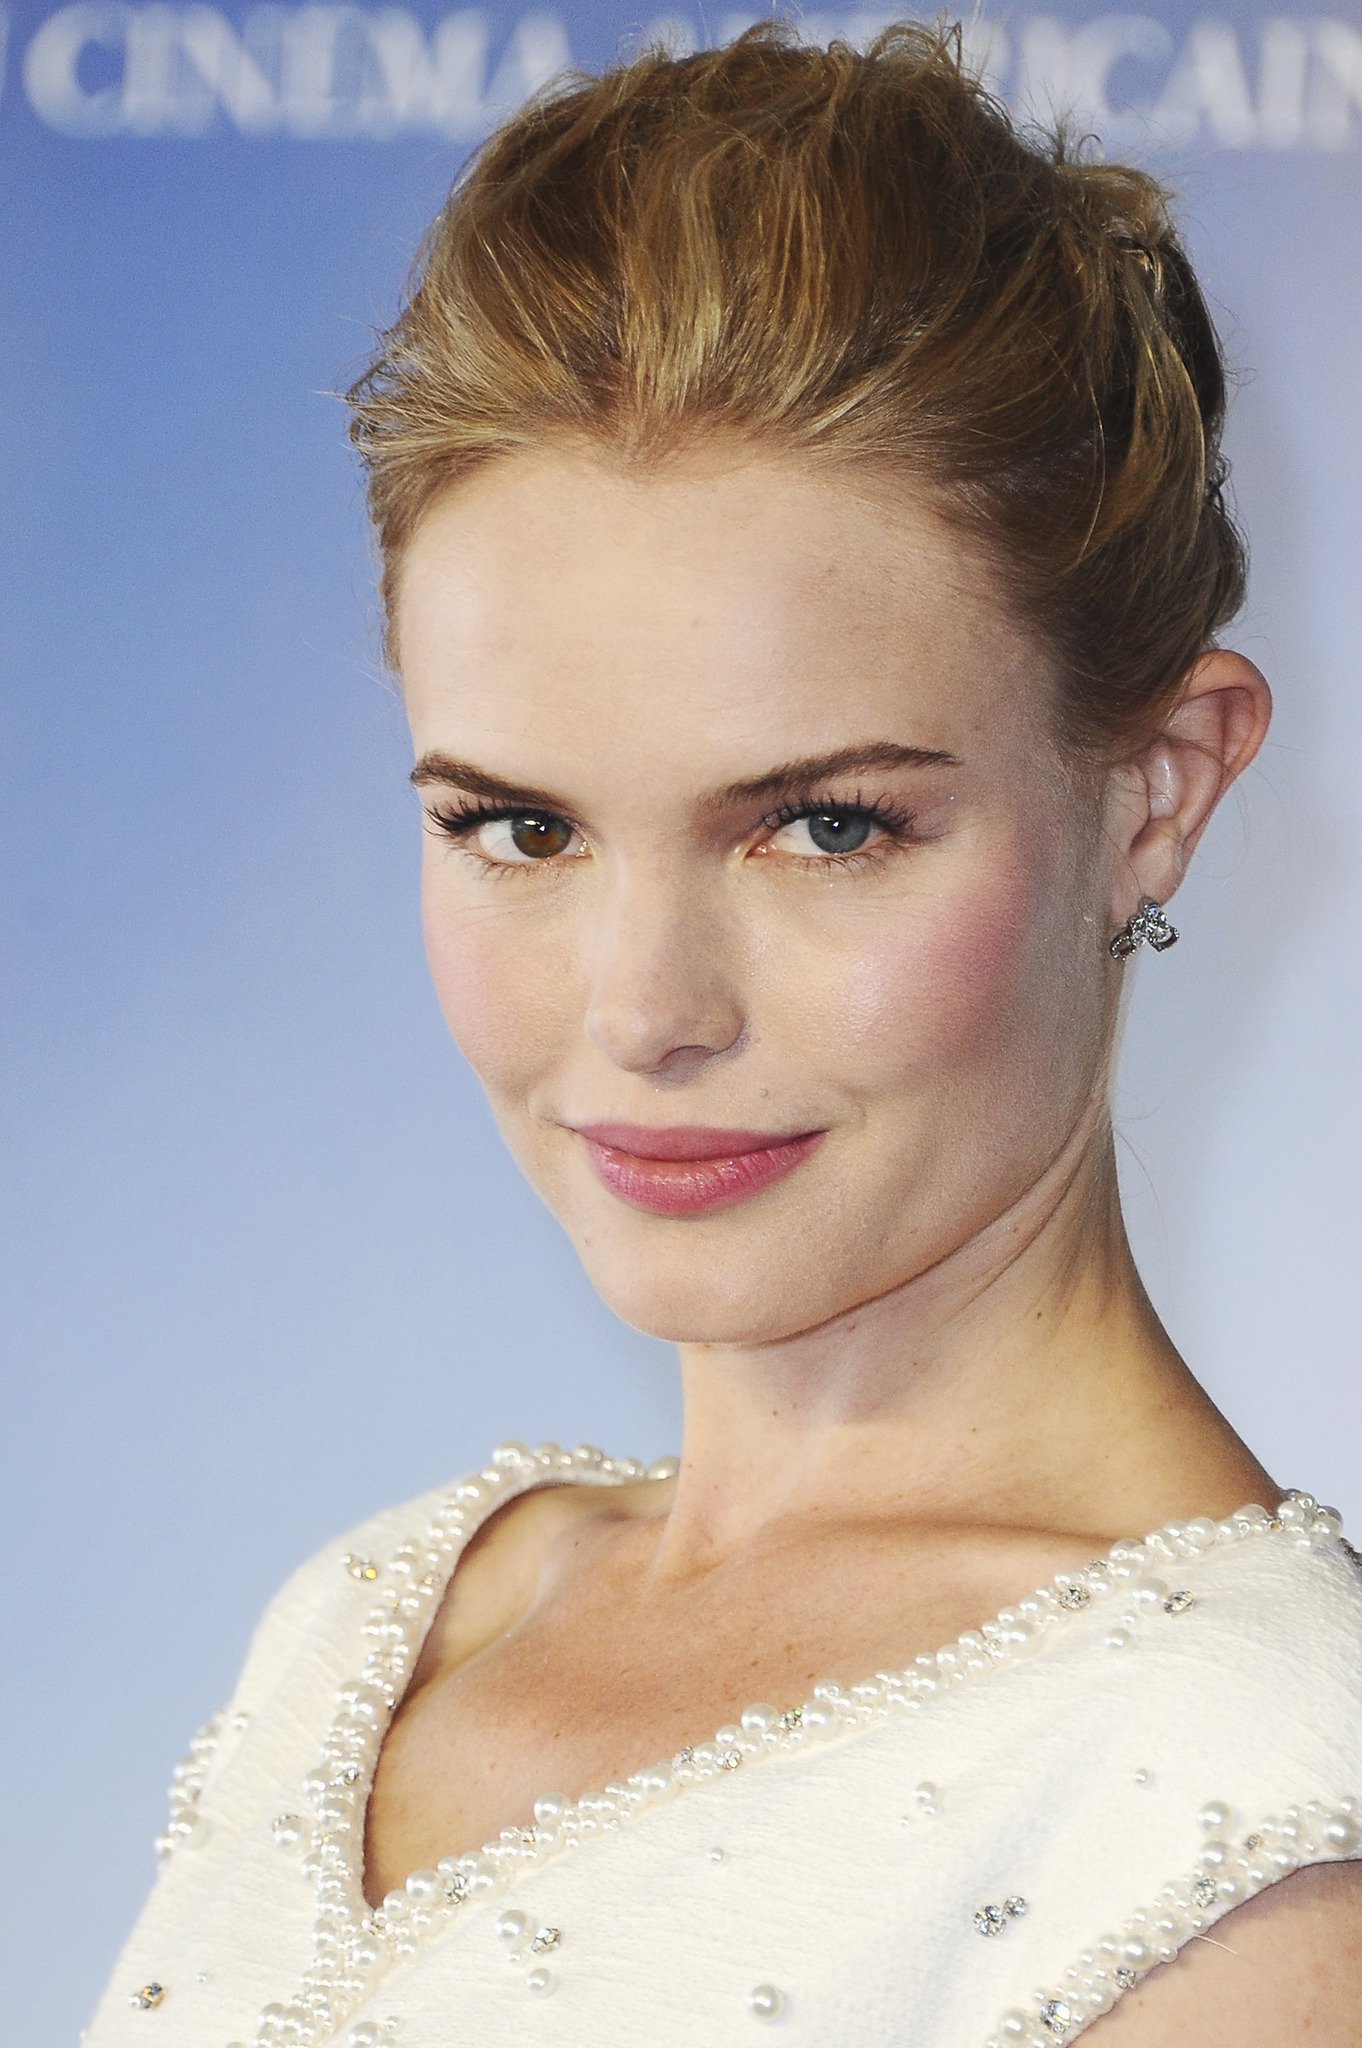 Kate Bosworth - IMDbPro Kate Bosworth